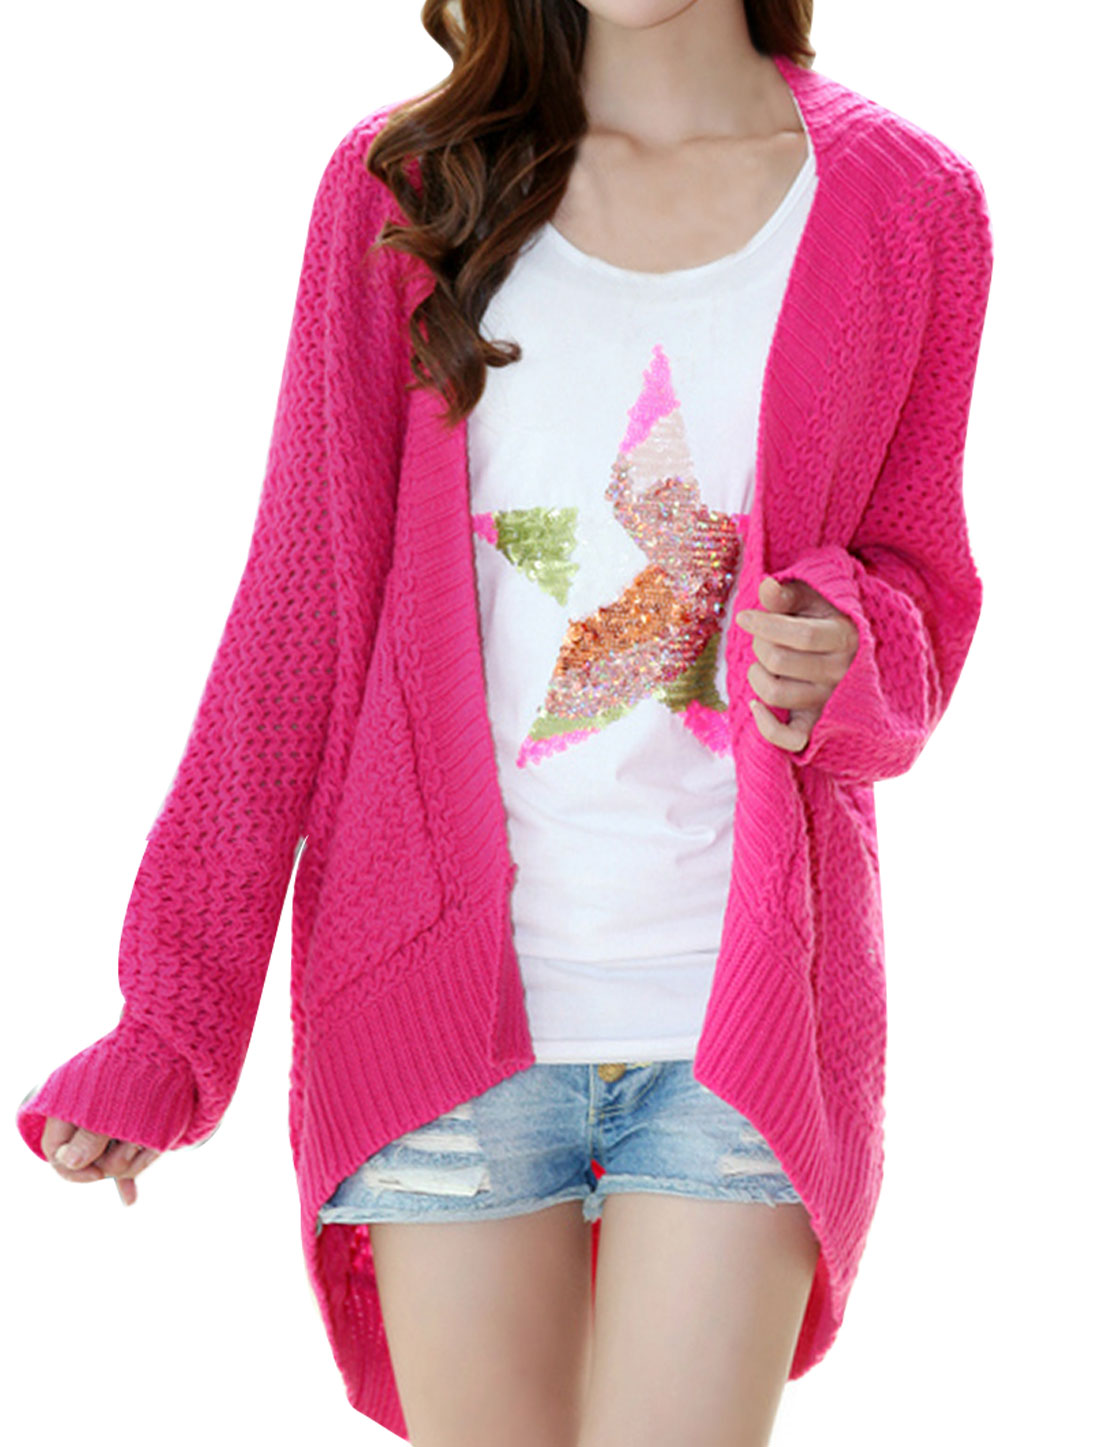 Lady Batwing Sleeved Slit Deep Pink Knitting Cardigan Cape Sweater M